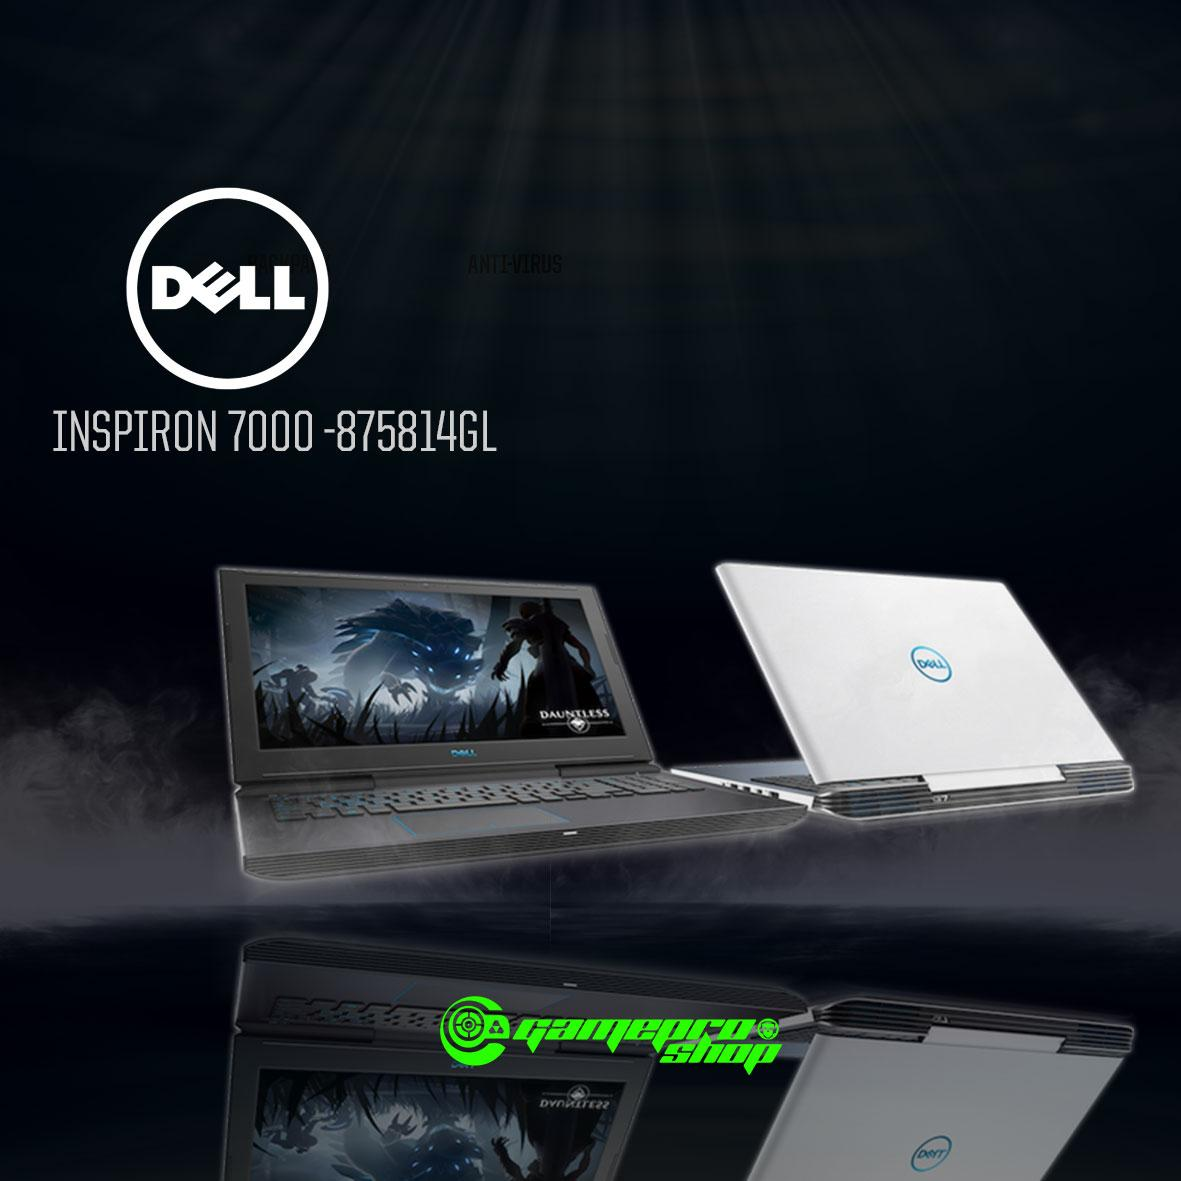 8th Gen DELL Inspiron G7- 7000 GTX 1050Ti Gaming Laptop (G7-875814GL-WH) *NDP PROMO*